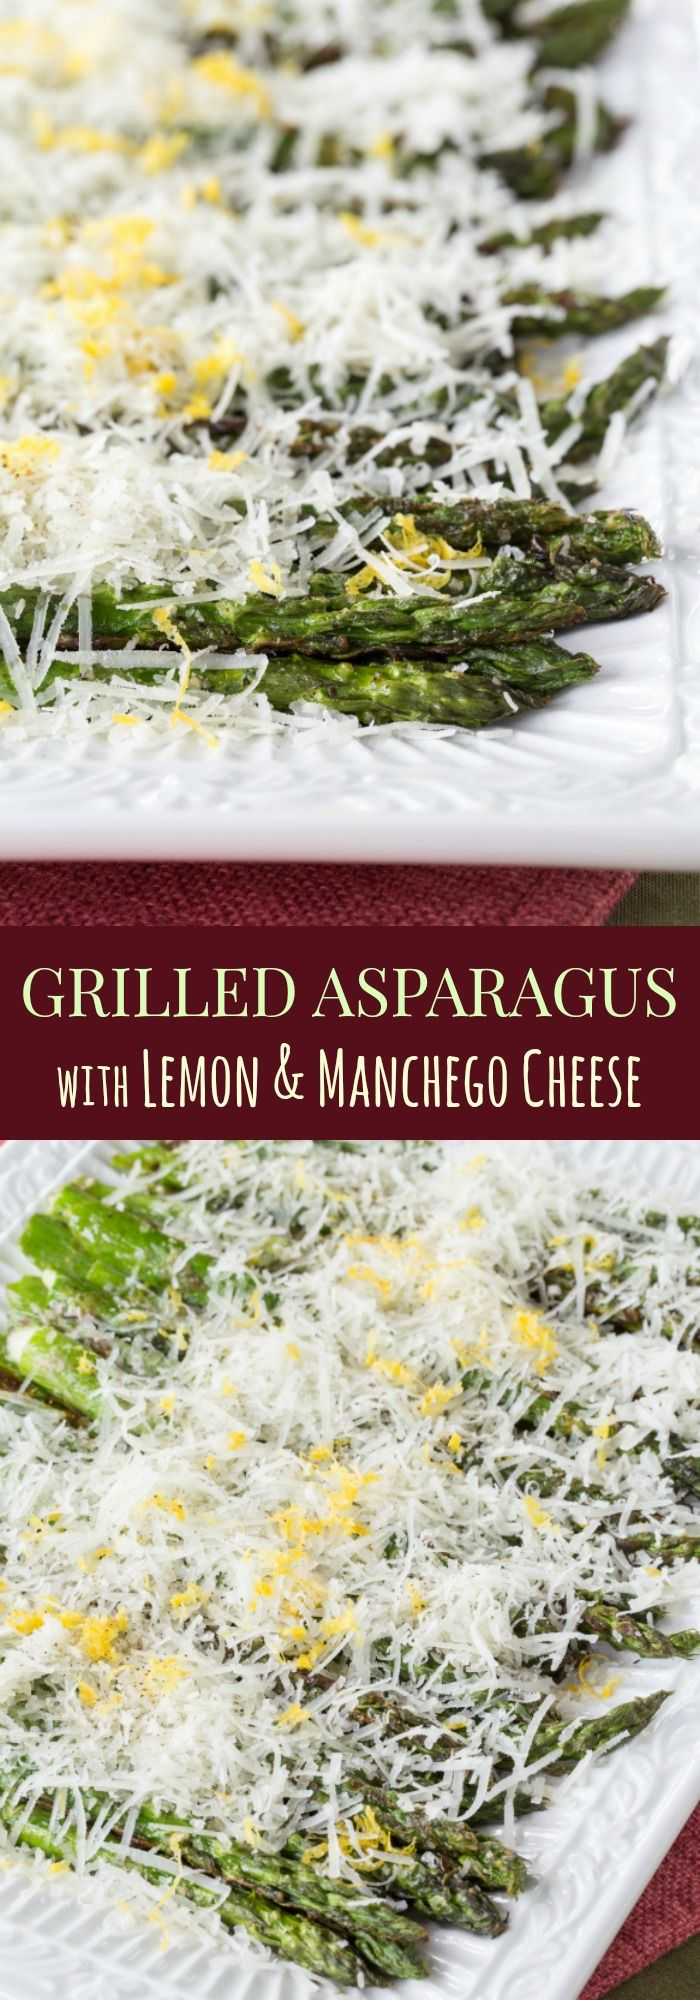 Grilled Asparagus with Lemon and Manchego Cheese - you only need a few simple ingredients for an easy summer vegetable side dish recipe that explodes with flavor. No Manchego? You can use Parmesan, Romano, or even and extra sharp cheddar cheese. | cupcakesandkalechips.com | gluten free, low carb, vegetarian